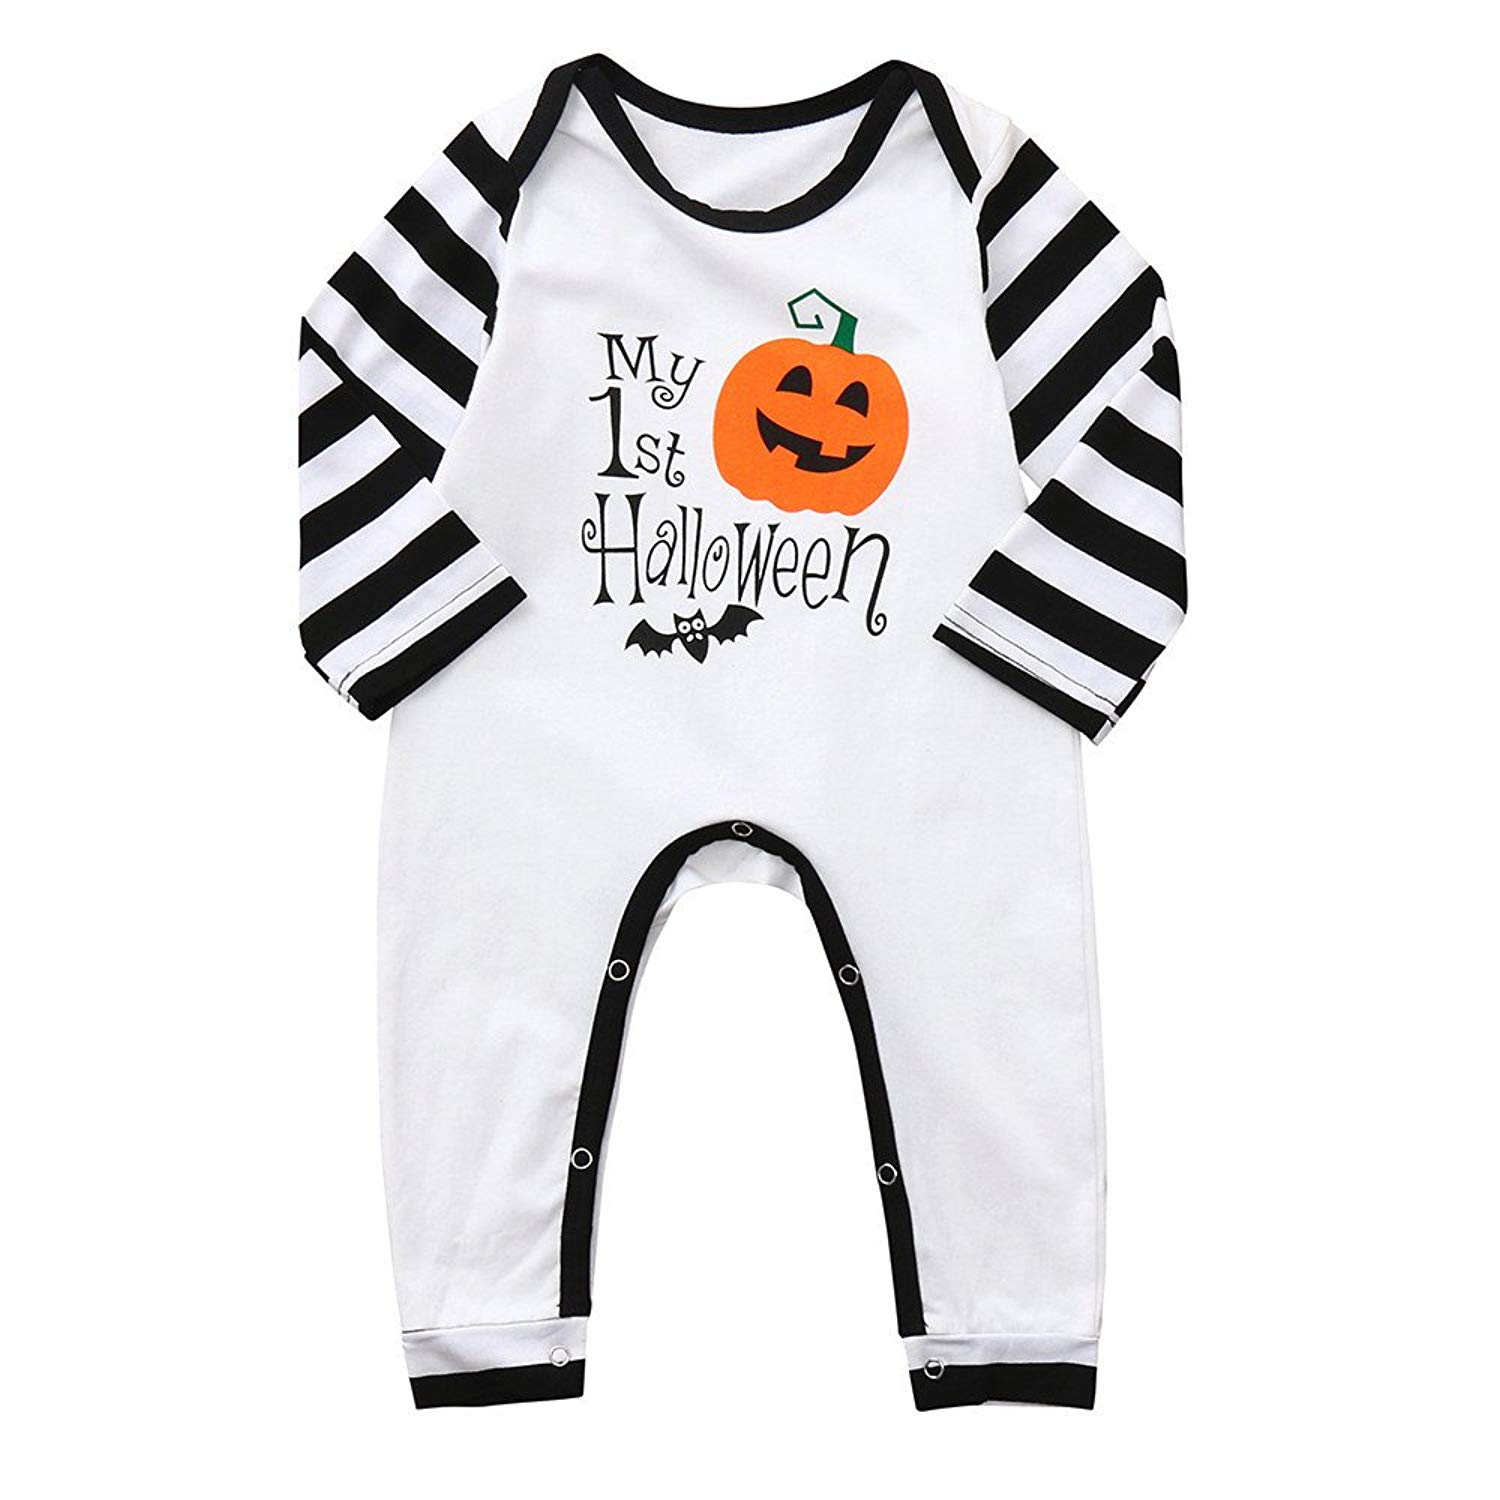 2c3f872e2b Get Quotations · Kehome Baby My 1st Halloween